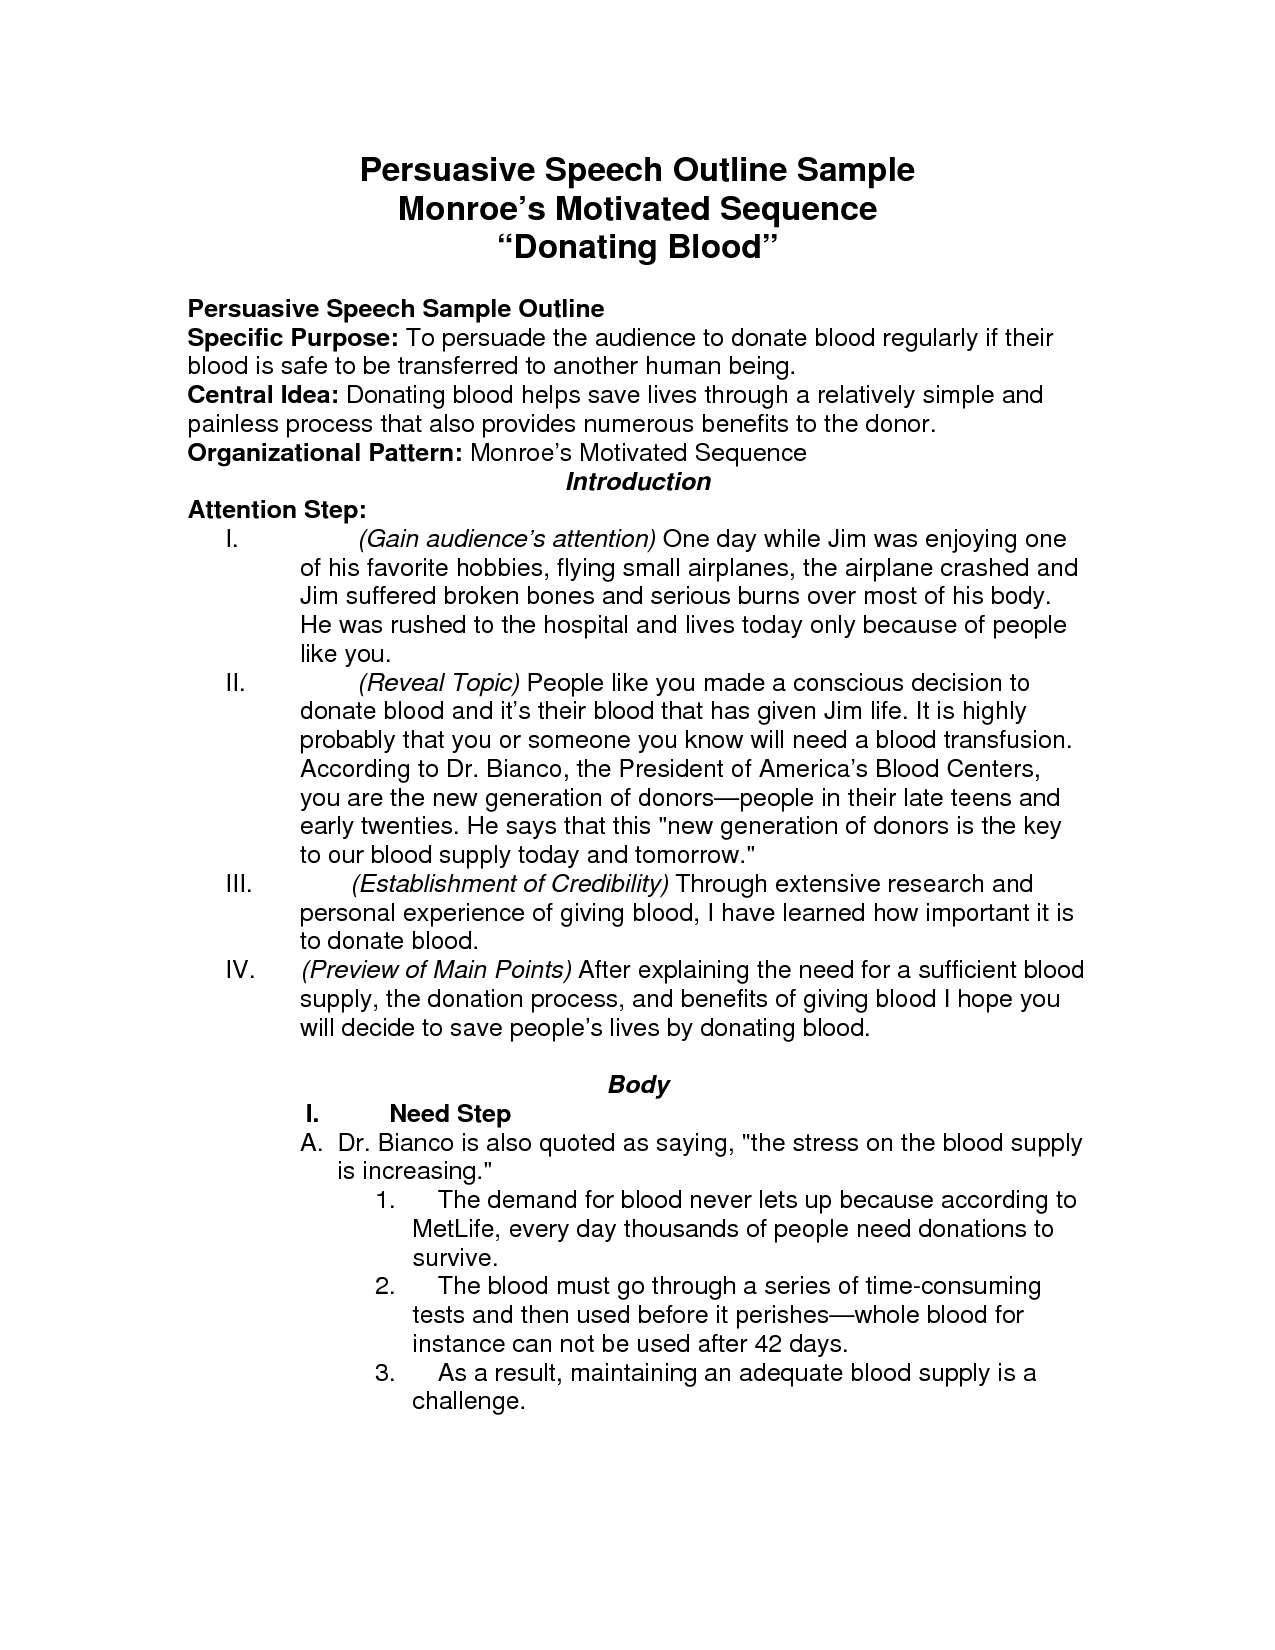 012 Persuasive Speech Outline Template 3tgrxdkt Essay Example Awesome Free On Texting While Driving Examples Full